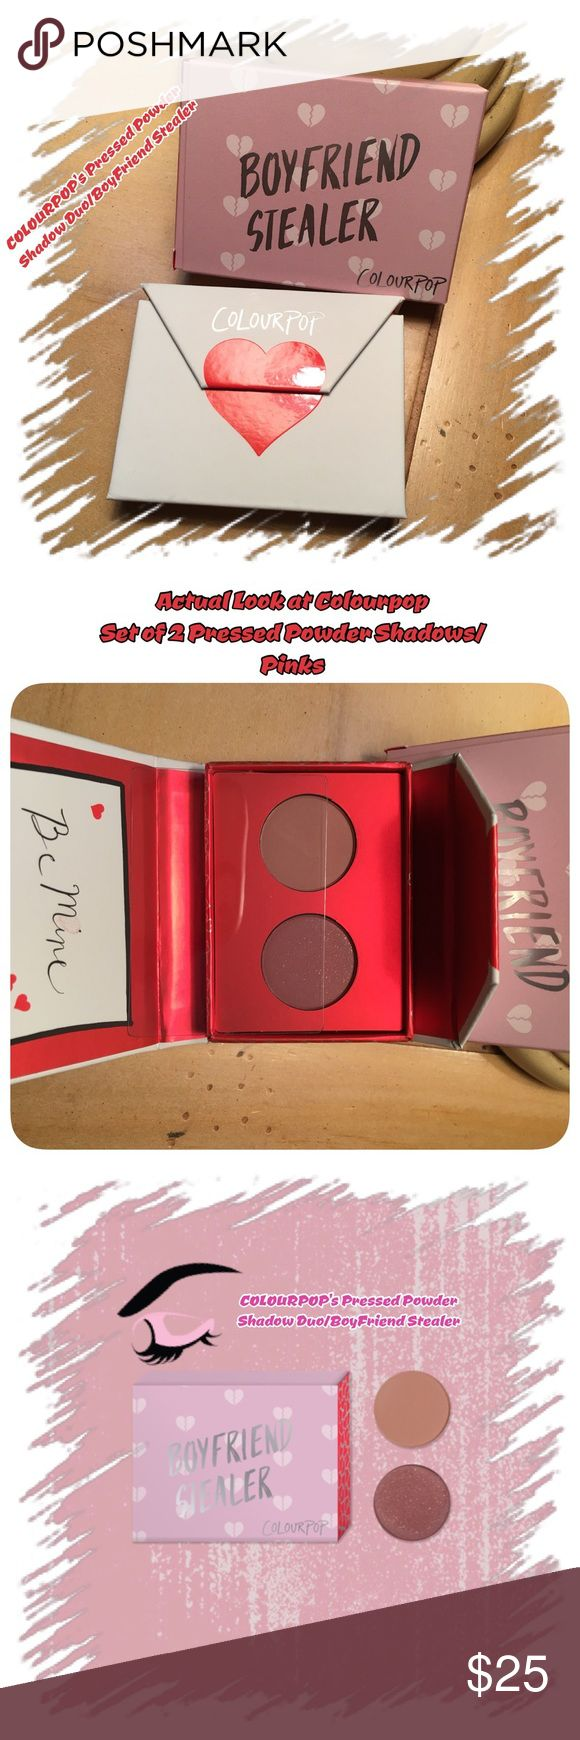 """Nip/Colourpop's New PP Duo Set/Boyfriend Stealer /Nip/COLOURPOP's Pressed Powder Shadow Duo/""""Boyfriend Stealer""""/Package is """"envelope w a kiss""""/This is pics of mine! They did it again! Matte formulation w glide on build-able coverage! W tiny flecks of gold in 1,so wasn't sure? But it's perfect! Shadows in set:""""Dreamboat"""" Matte dusty rose &""""Pretty Cruel Matte Berry mauve w gold flecks! SOFT, build-able coverage this rosy duo will attract all the fellas! U can create any look u…"""